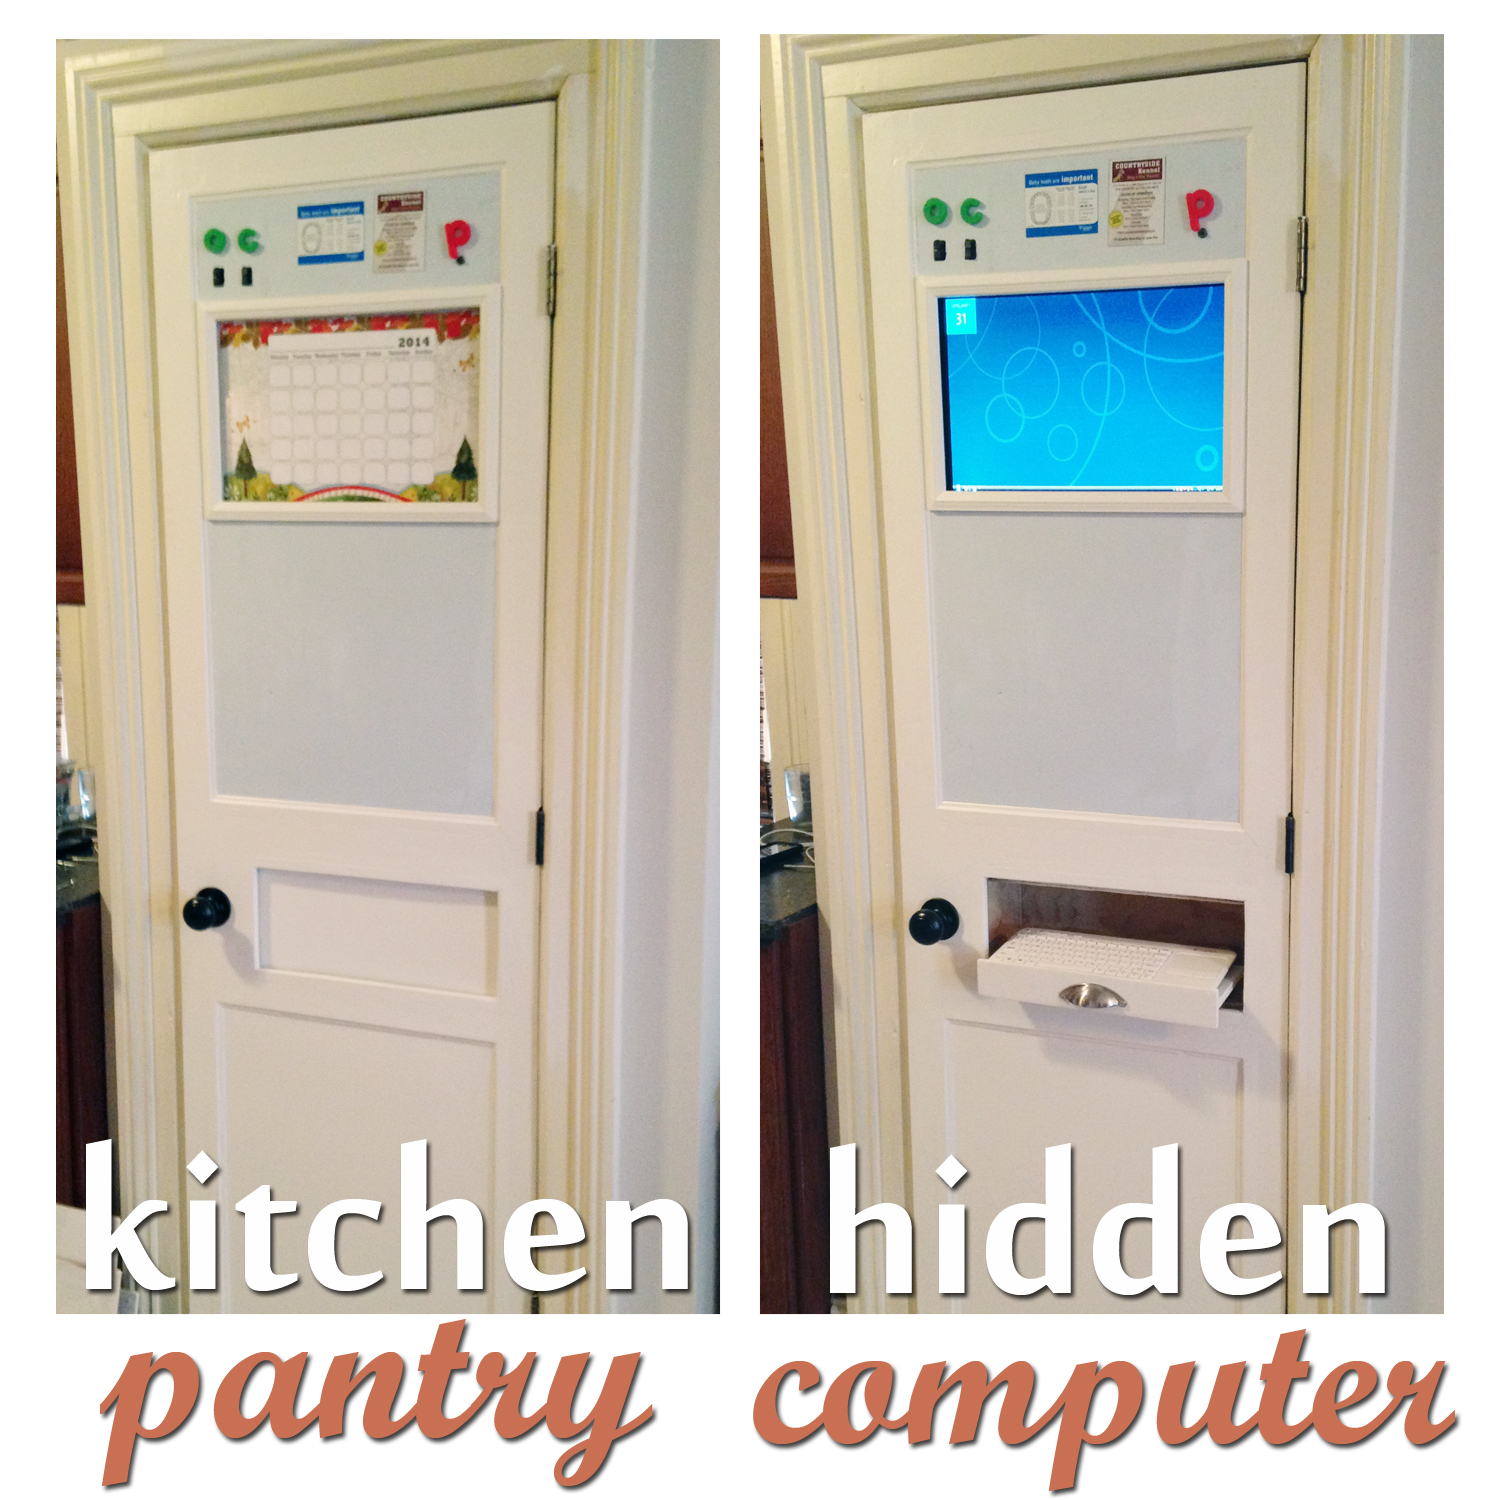 Picture of Kitchen Pantry Computer (Hidden)